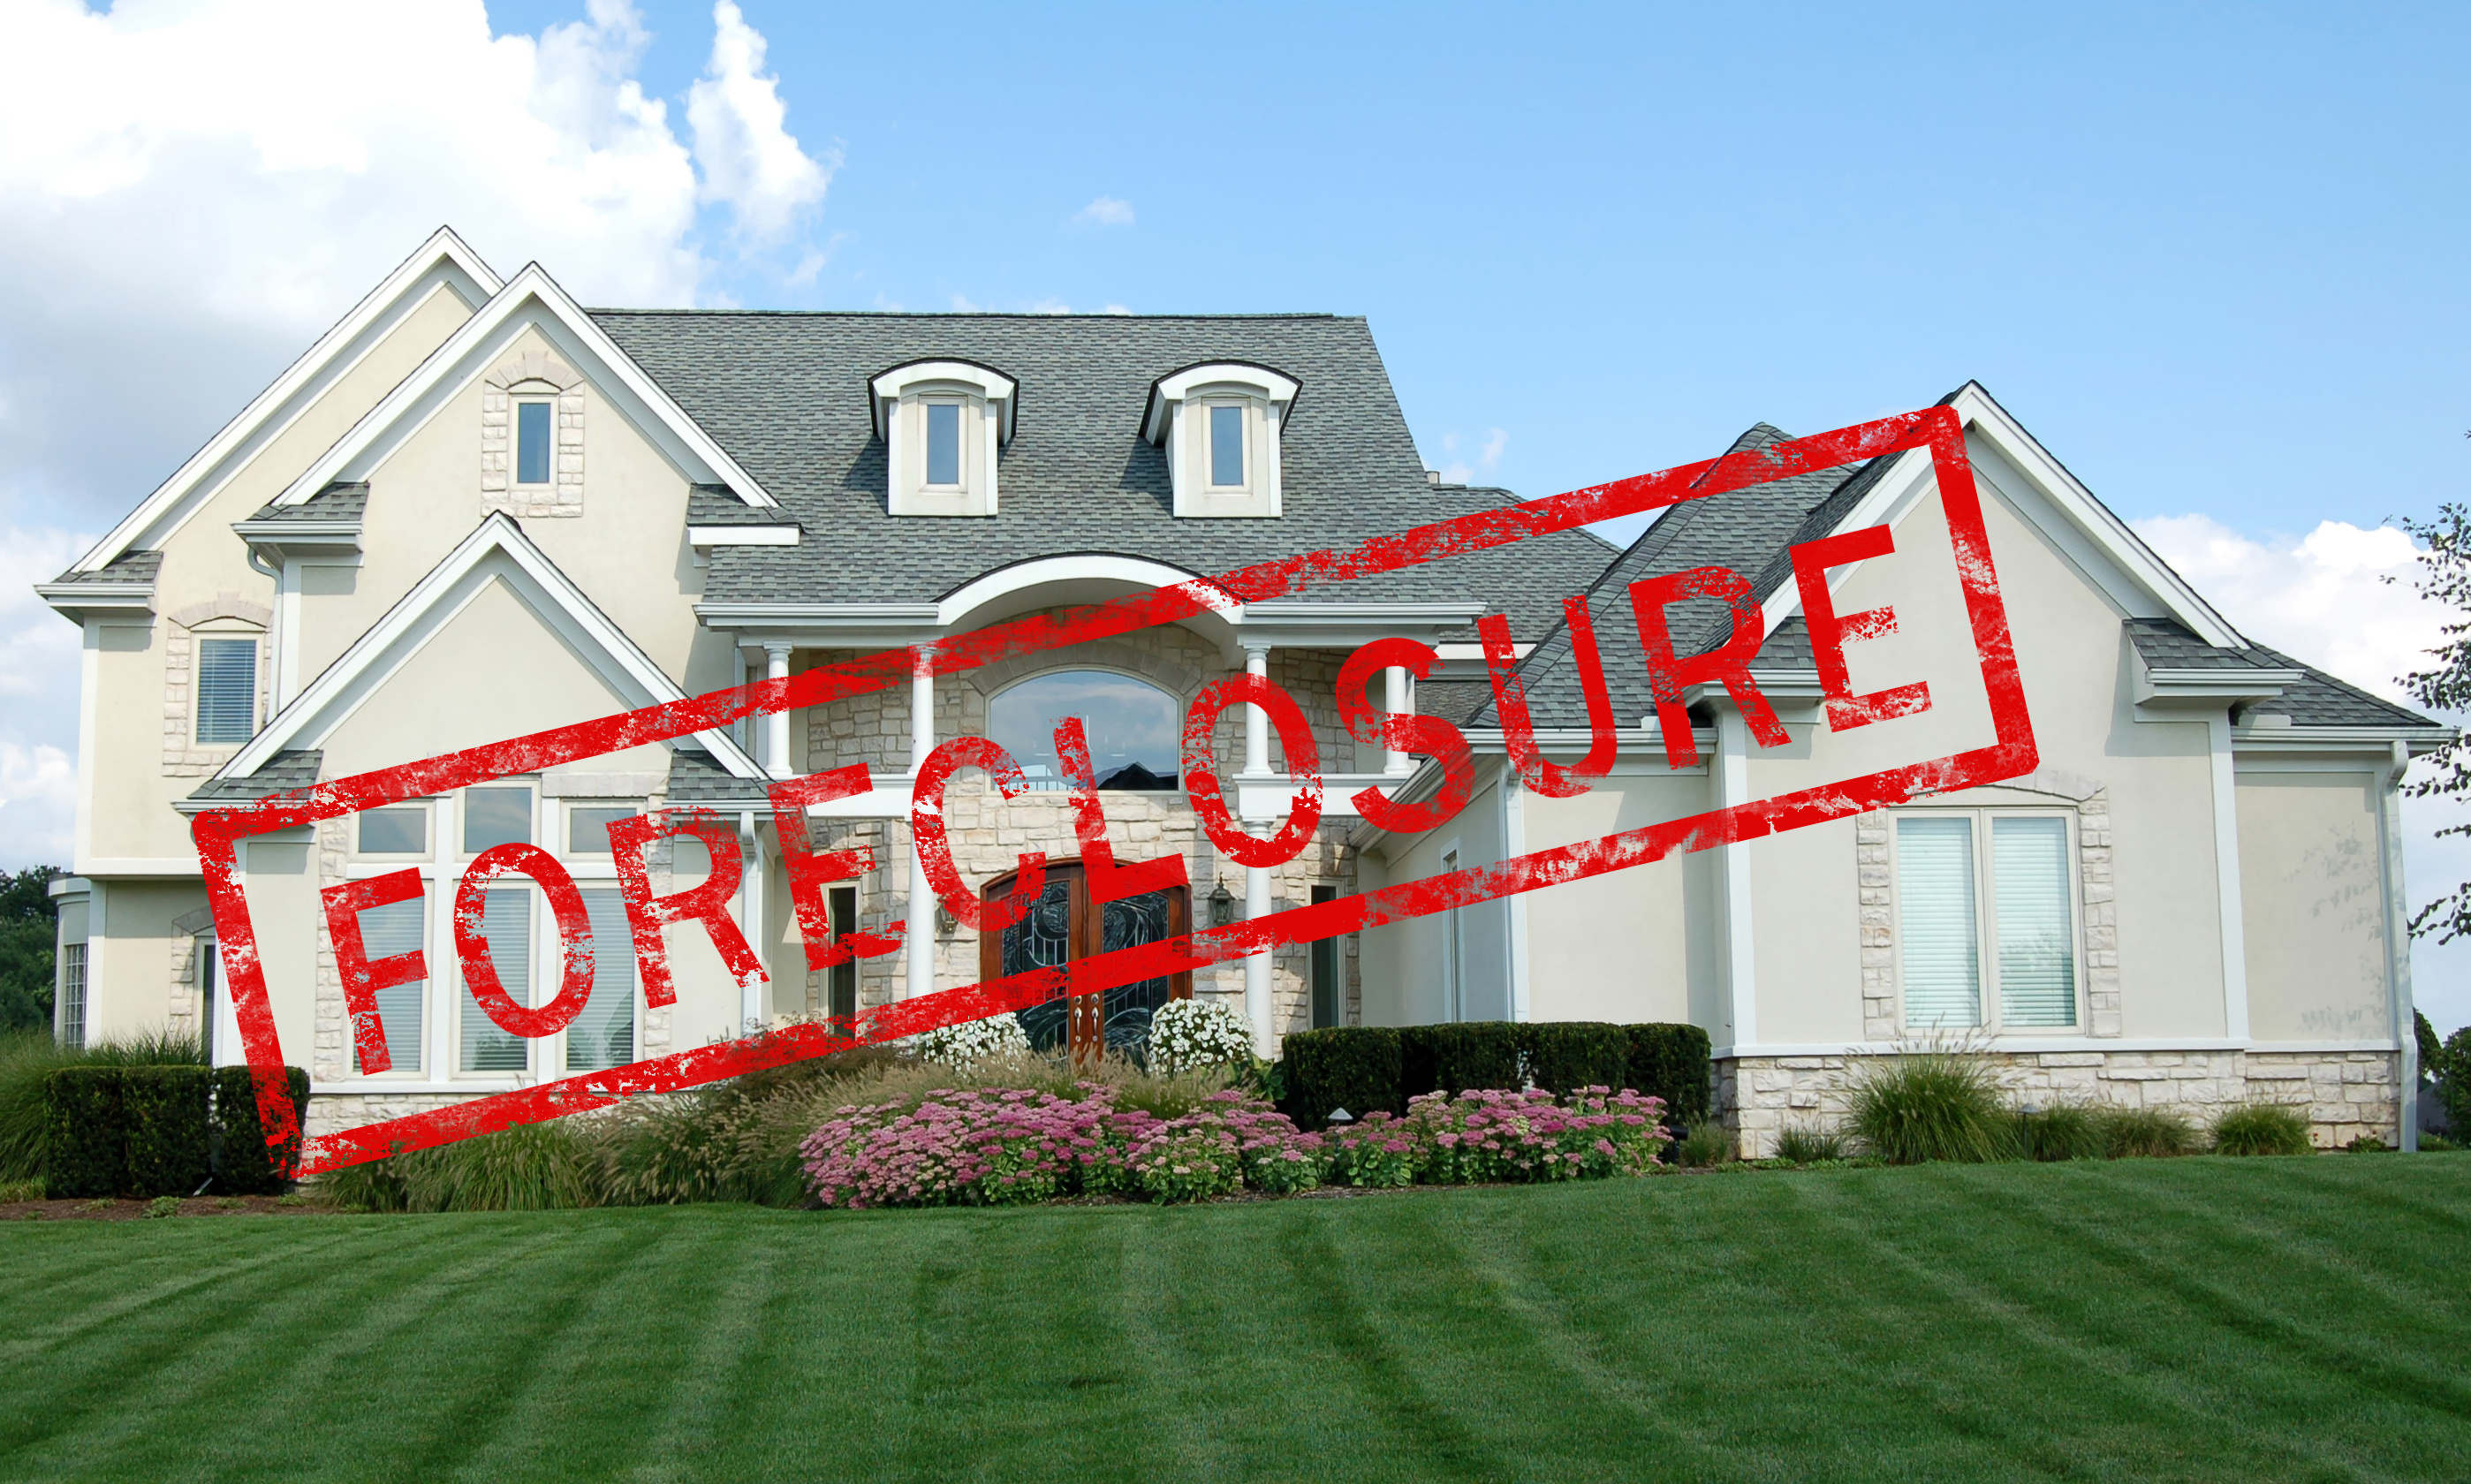 Call Taggart and Associates, Inc. to discuss valuations of Shawnee foreclosures